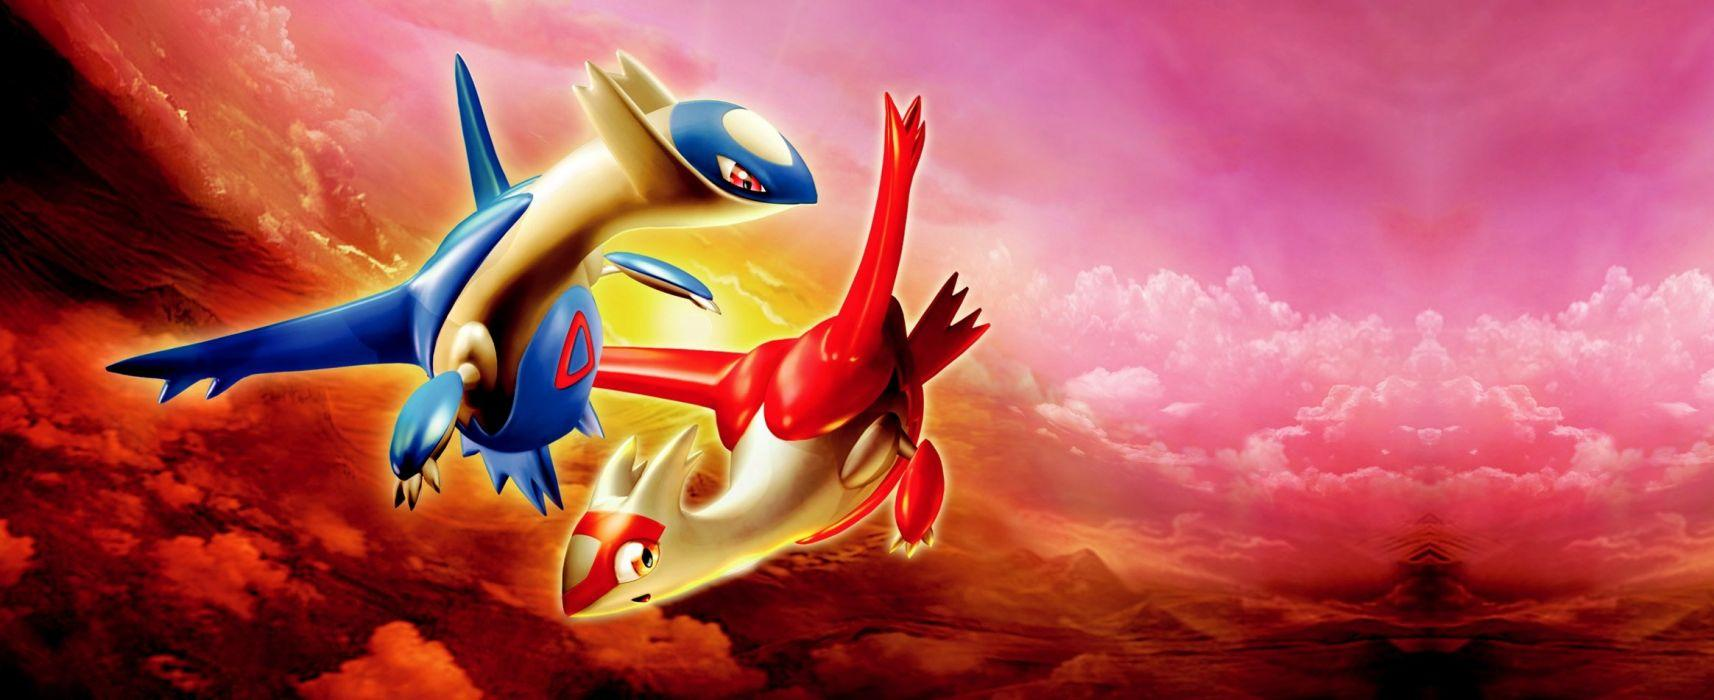 Latias and Latios wallpaper | 2328x951 | 1068671 | WallpaperUP